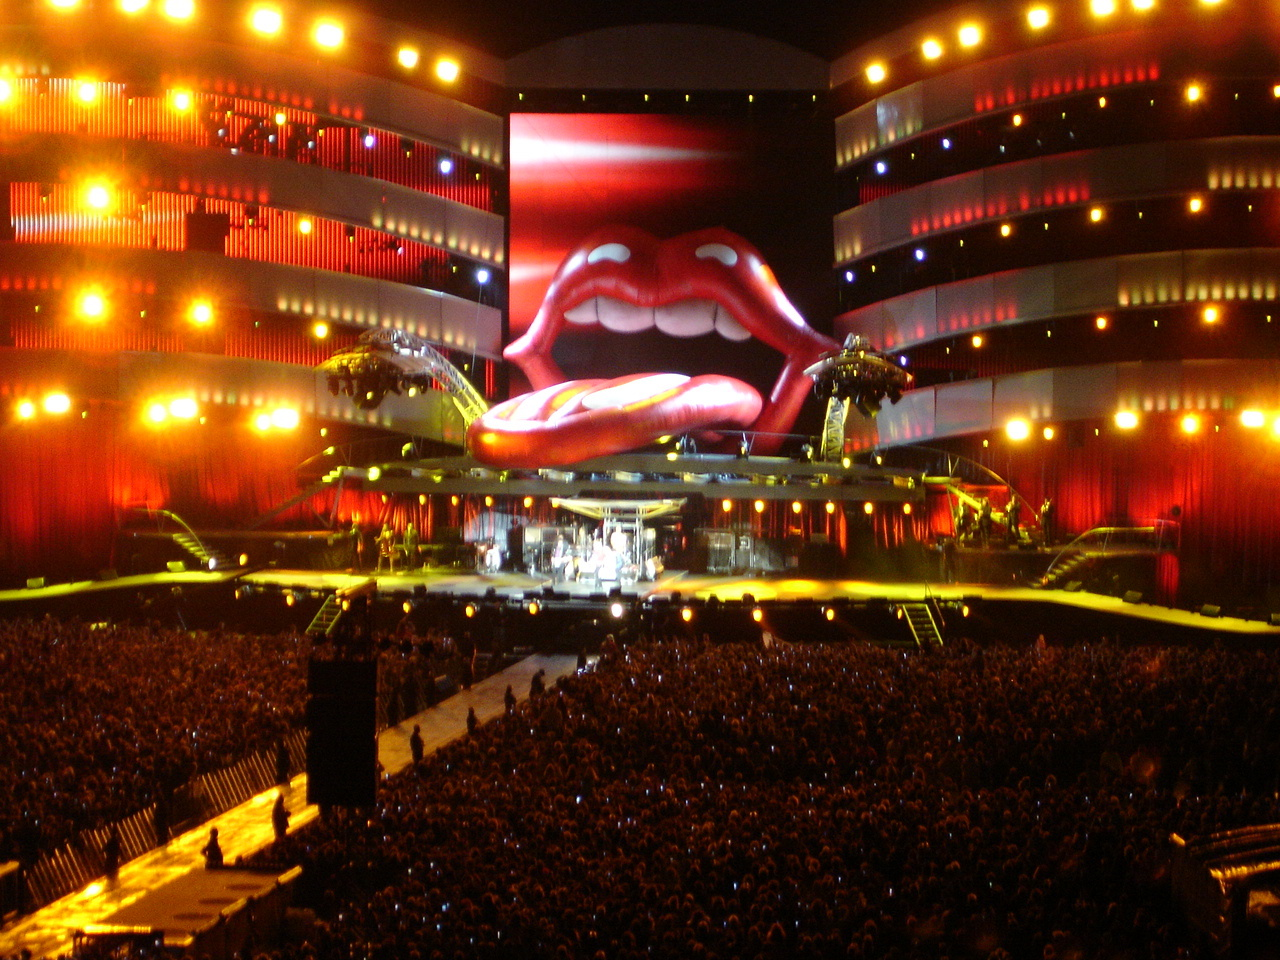 a bigger band tour the rolling stones starsailor stade de france saint denis june 16. Black Bedroom Furniture Sets. Home Design Ideas